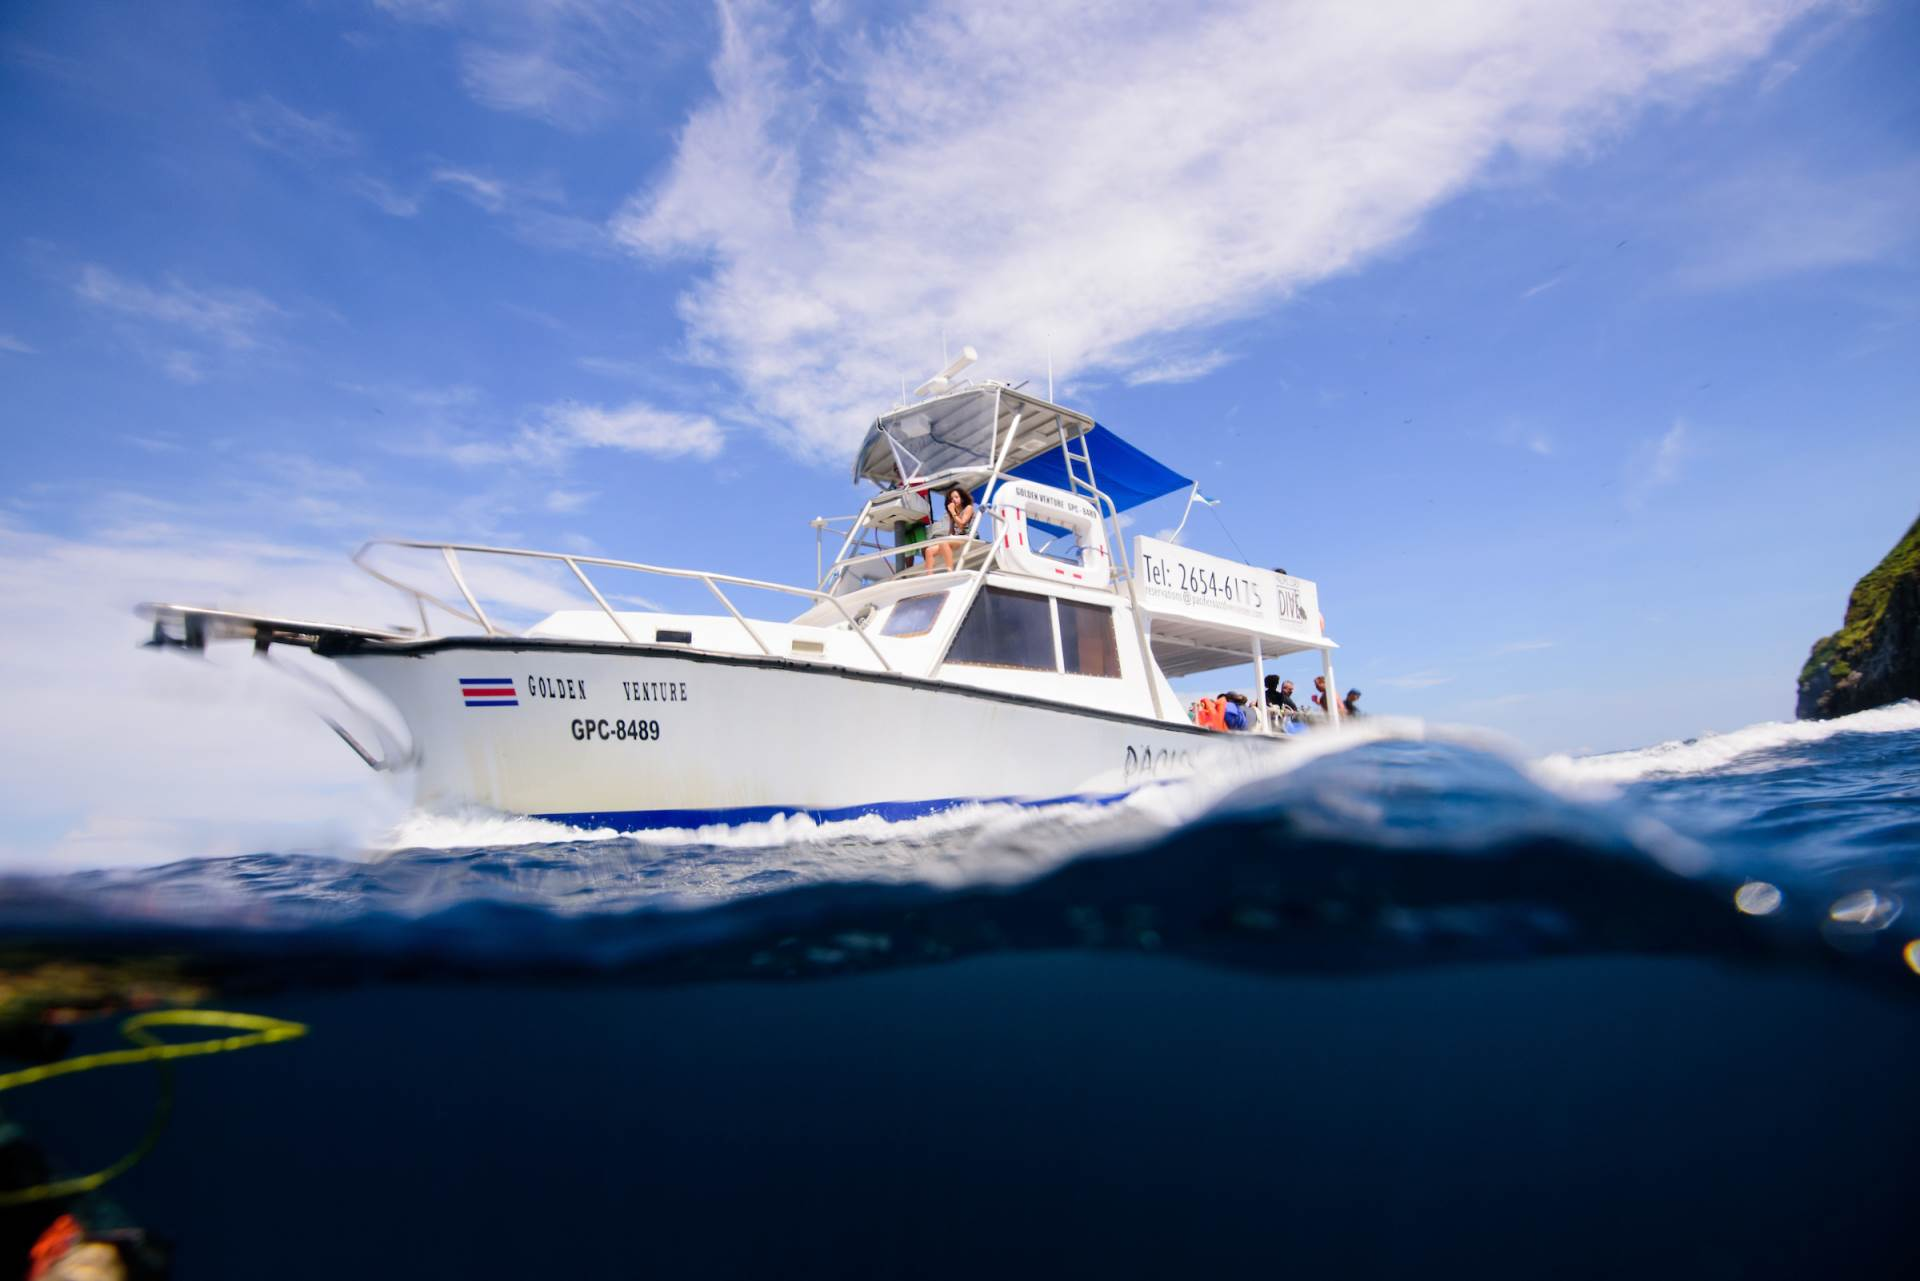 Cristal waters in Catalina Islands and North beaches for beginners and for expert divers.